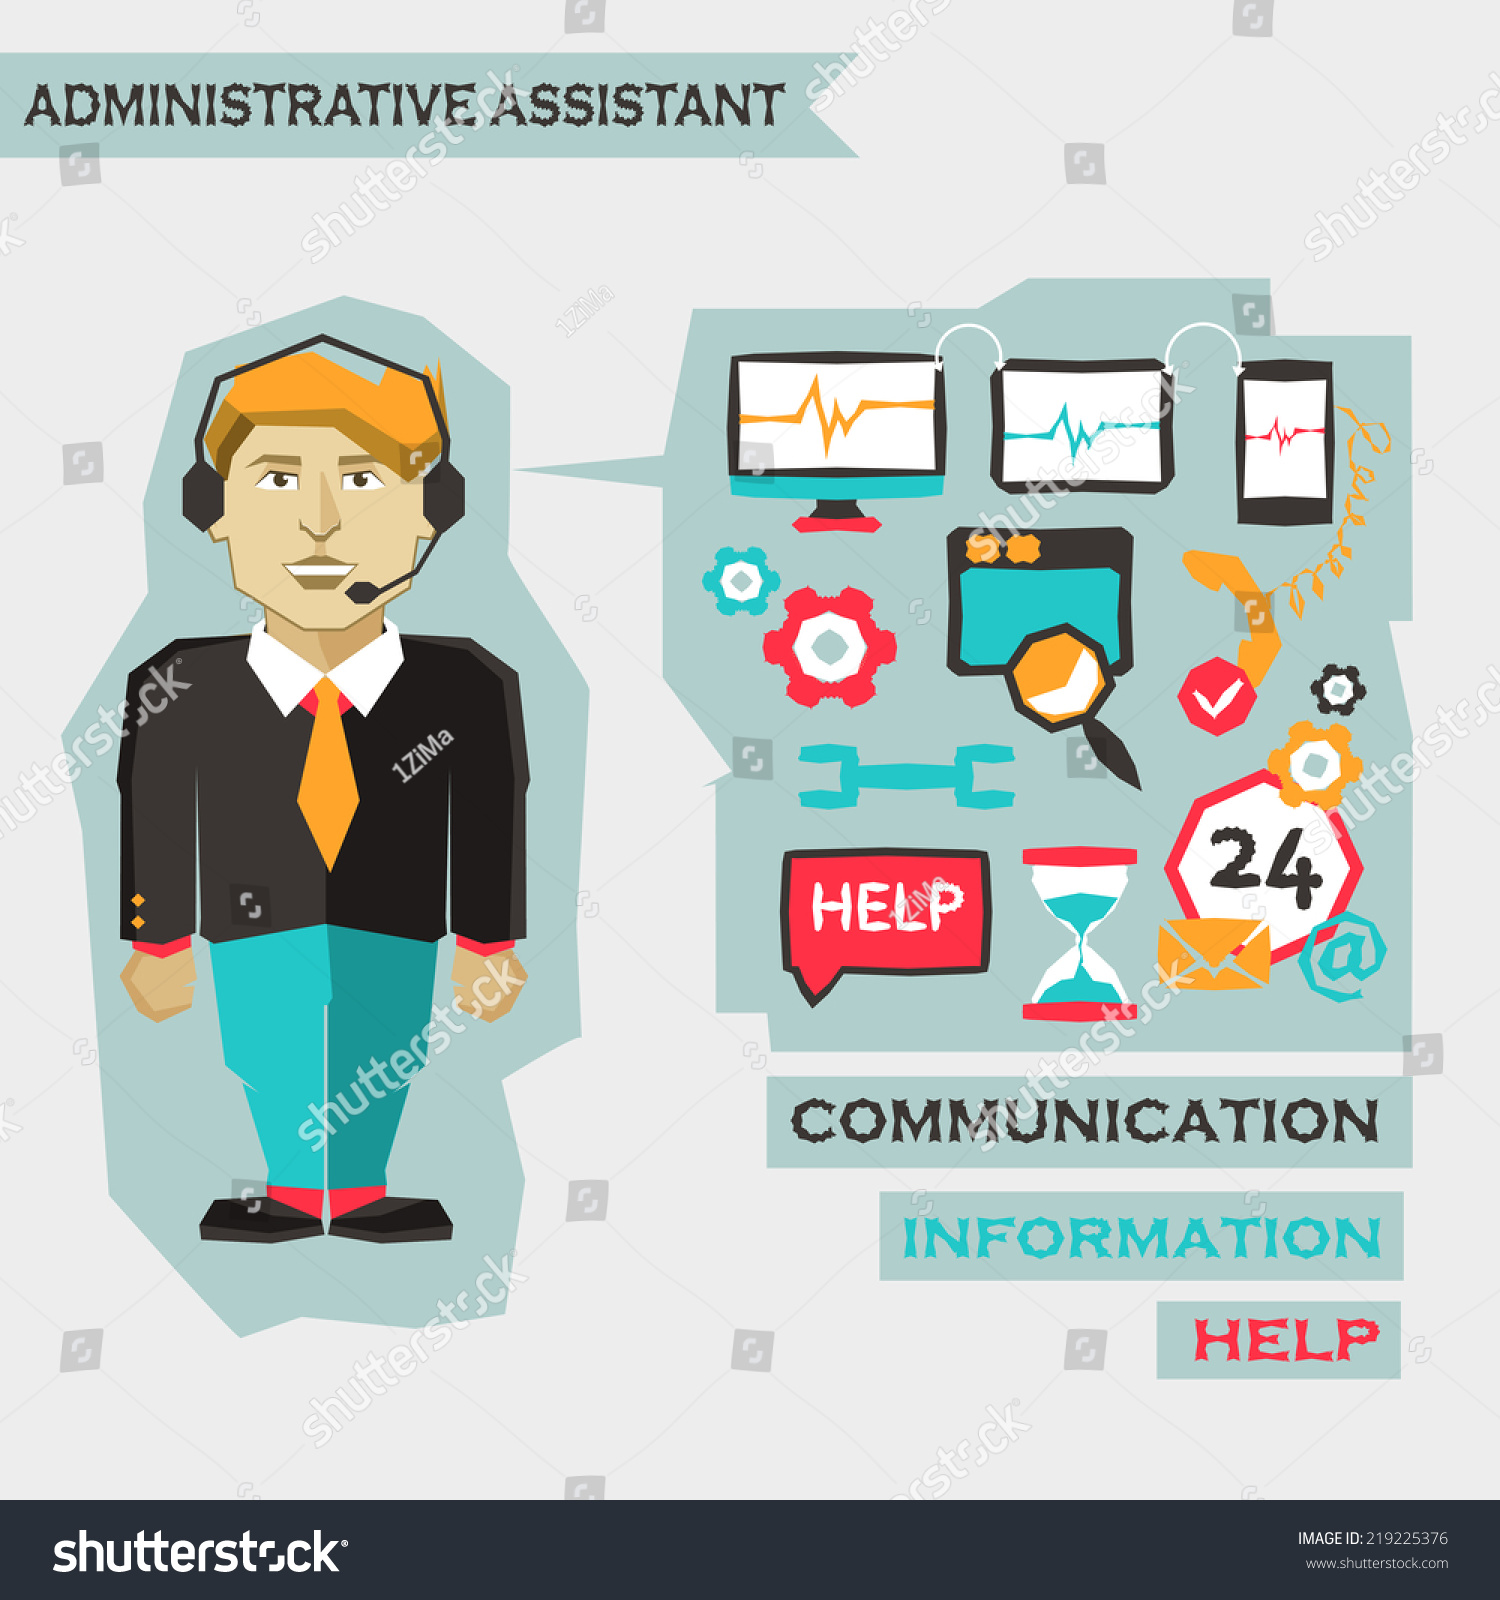 Administrative Assistant. Freelance Infographic.  Administrative Assistant